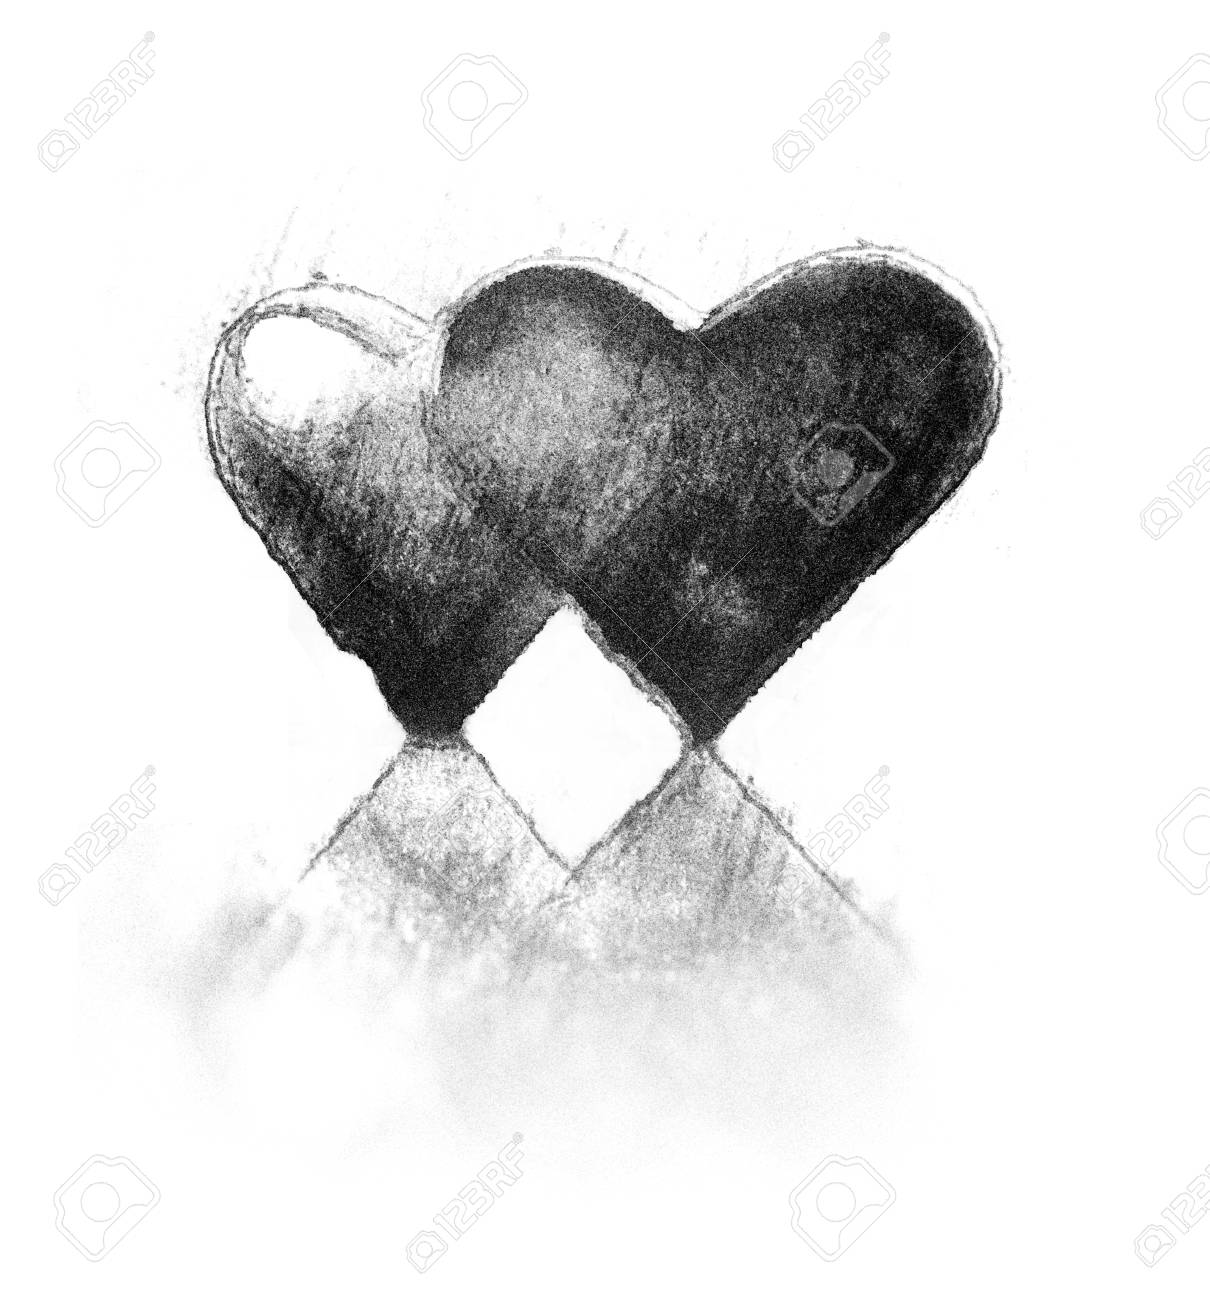 a pair of 3d heart shapes rough sketch style two hearts close